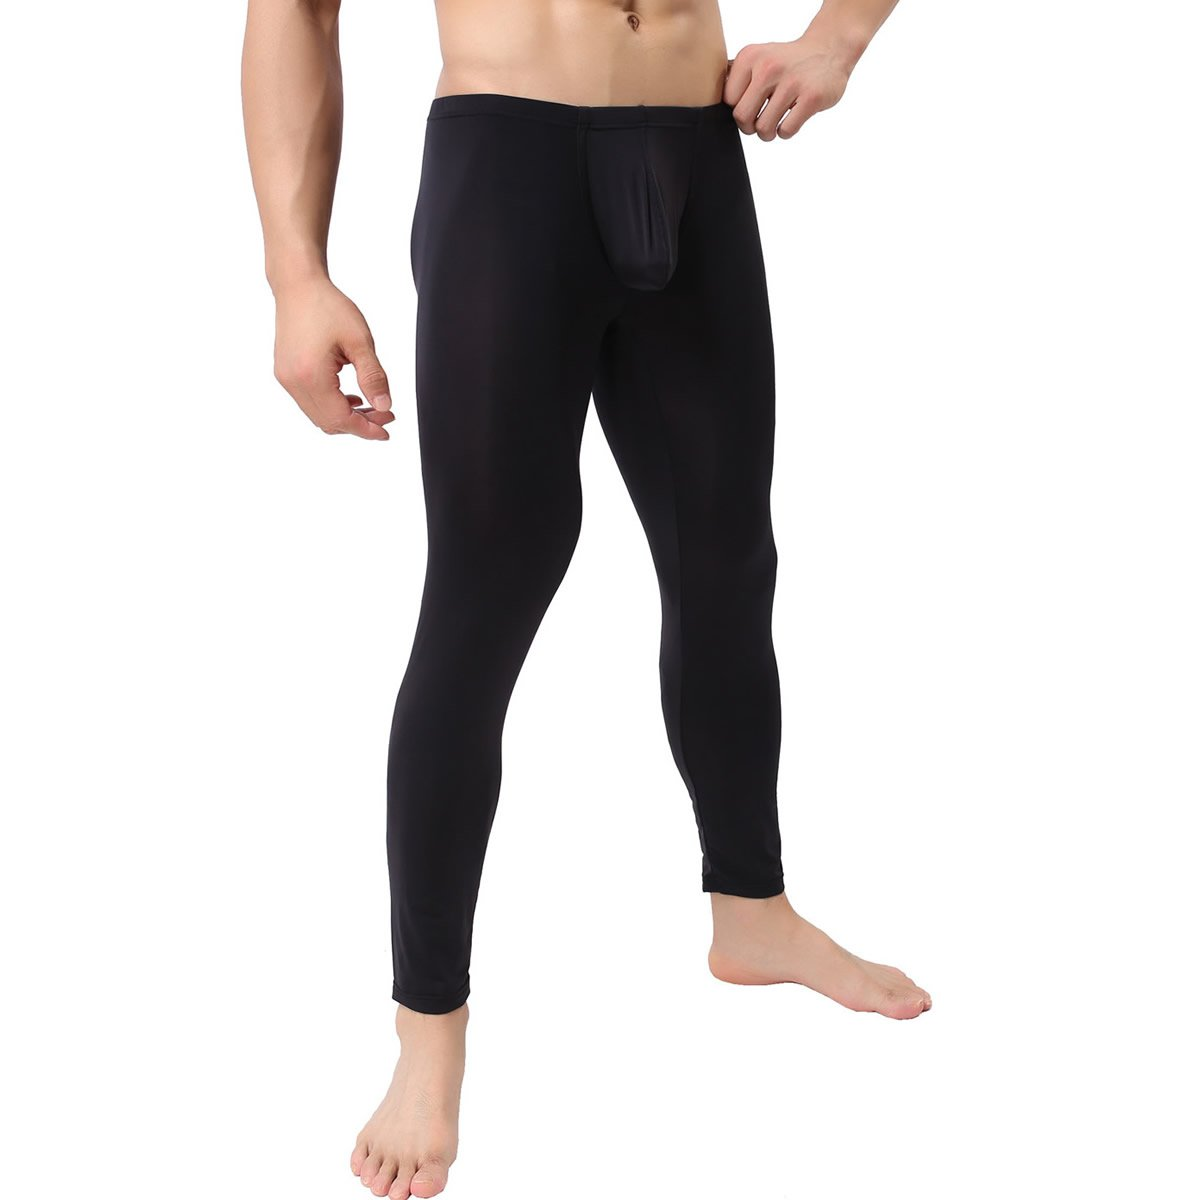 Men's Tight Long Underwear Sexy Long Pants Sexy Tight Underwear Soft Compression Underwear for Men Long Leggings Pants (Black US Small/with Tag M)